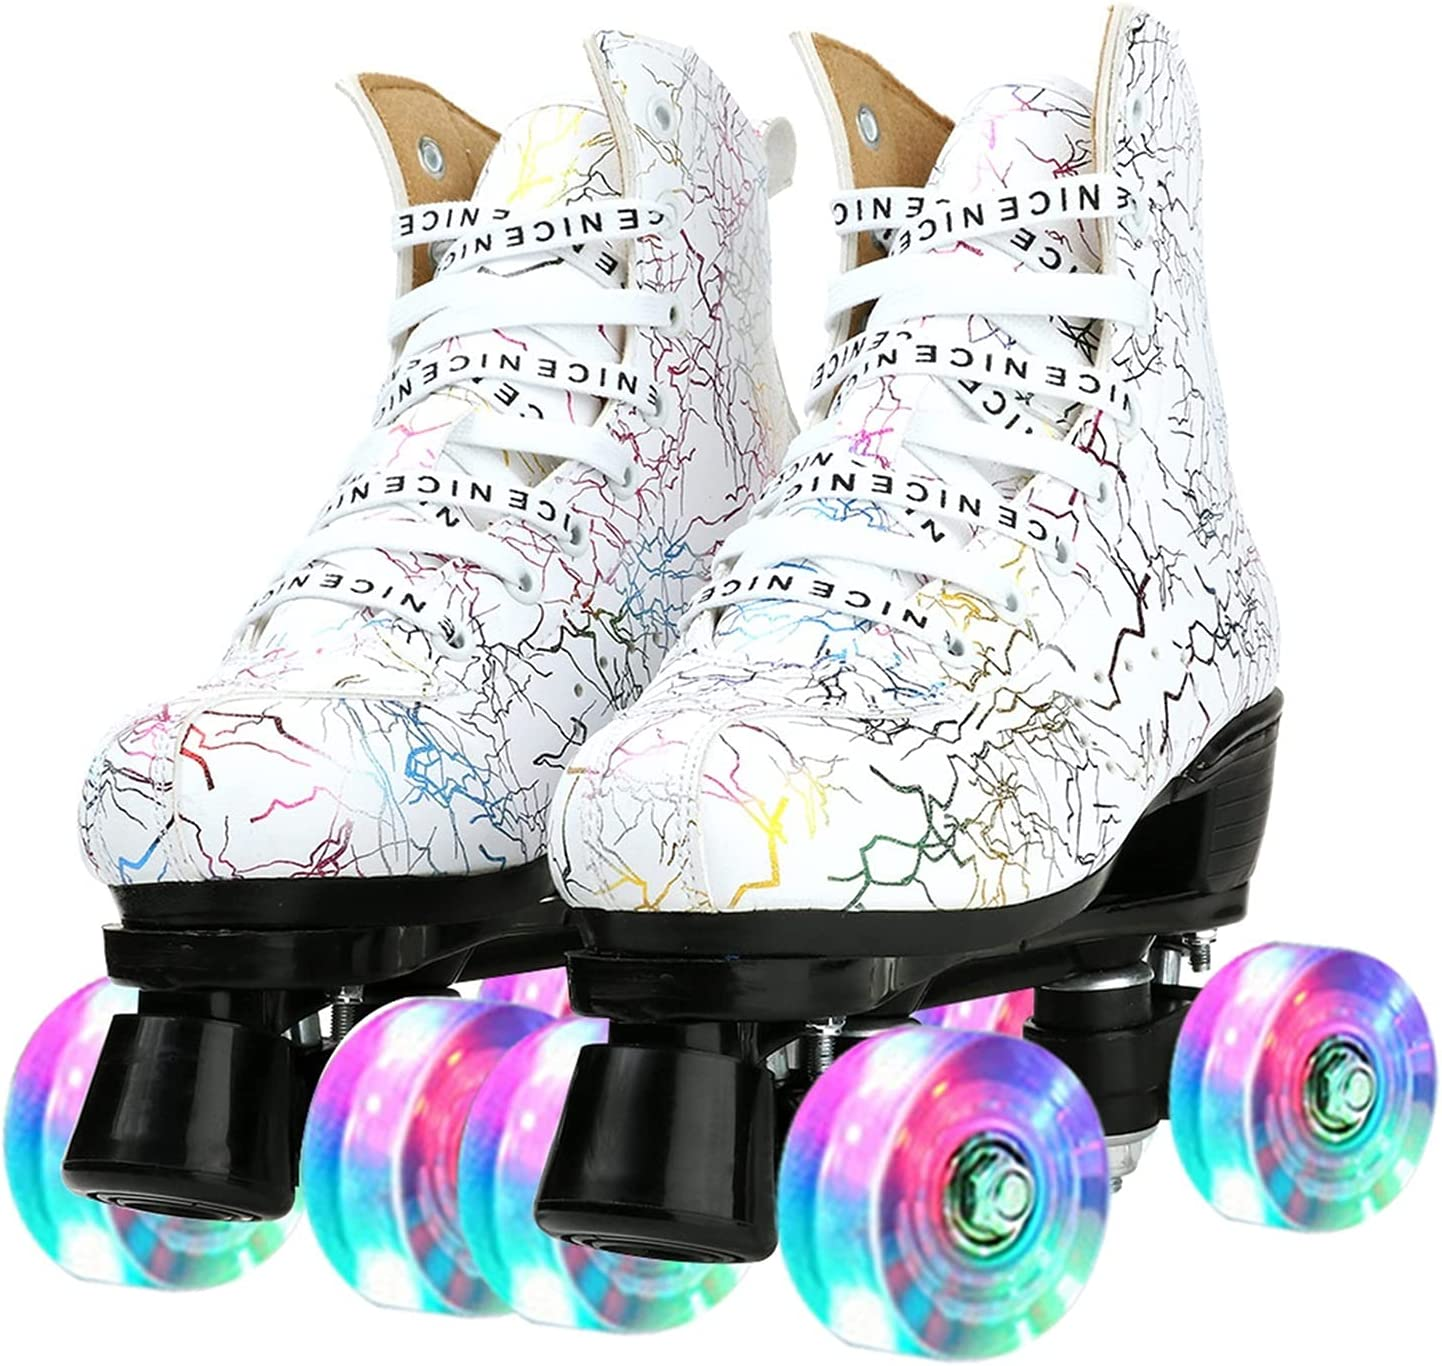 Women's Roller Skates PU Max 78% OFF Max 57% OFF Leather High-top Four-Wh